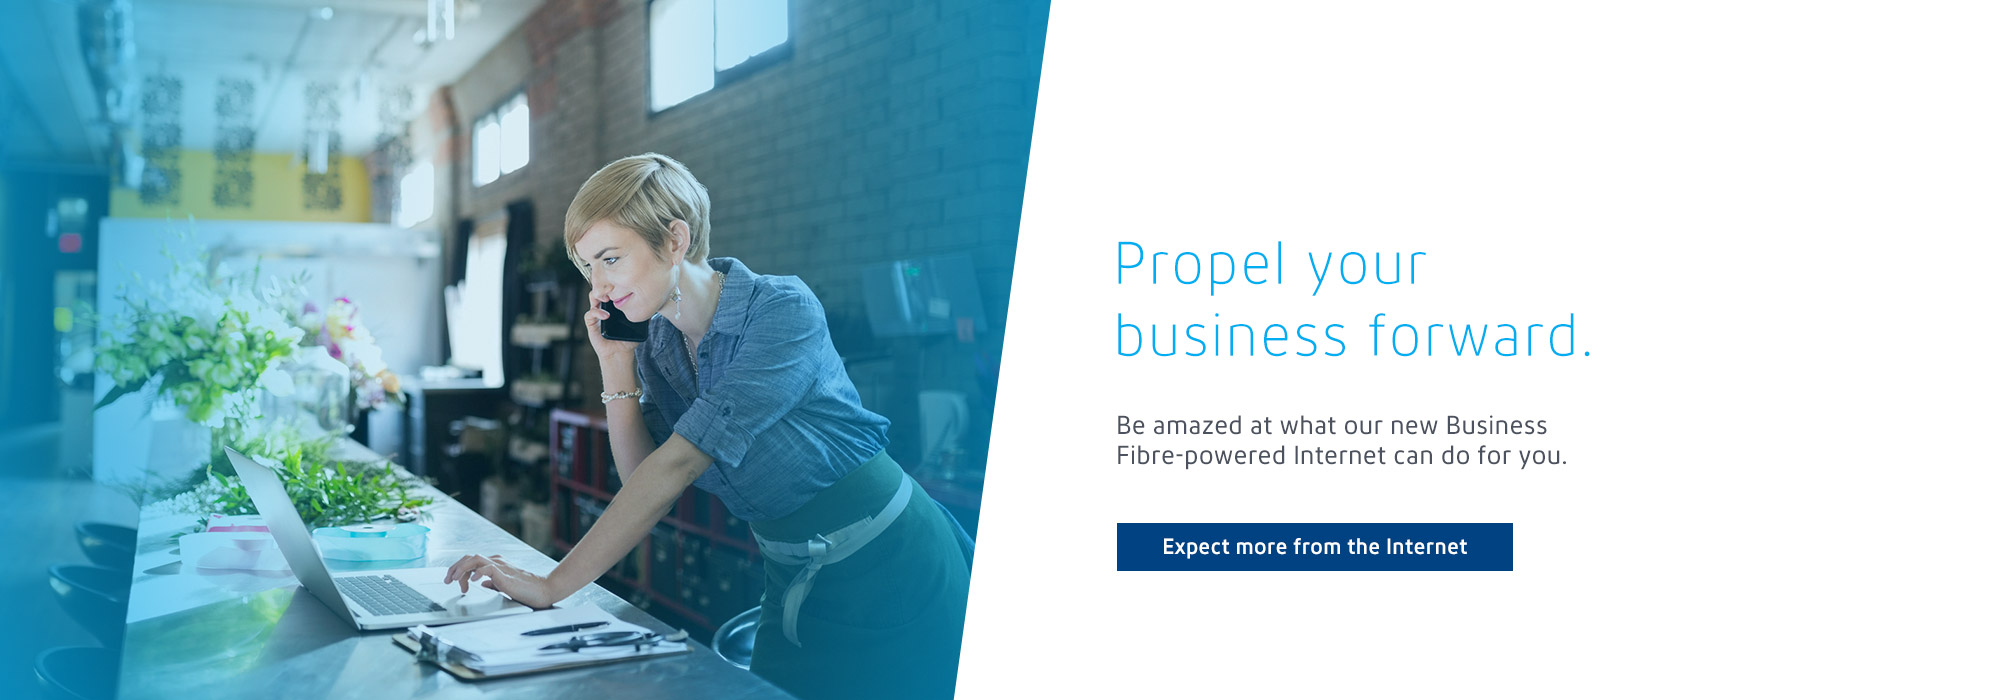 Propel your business forward.